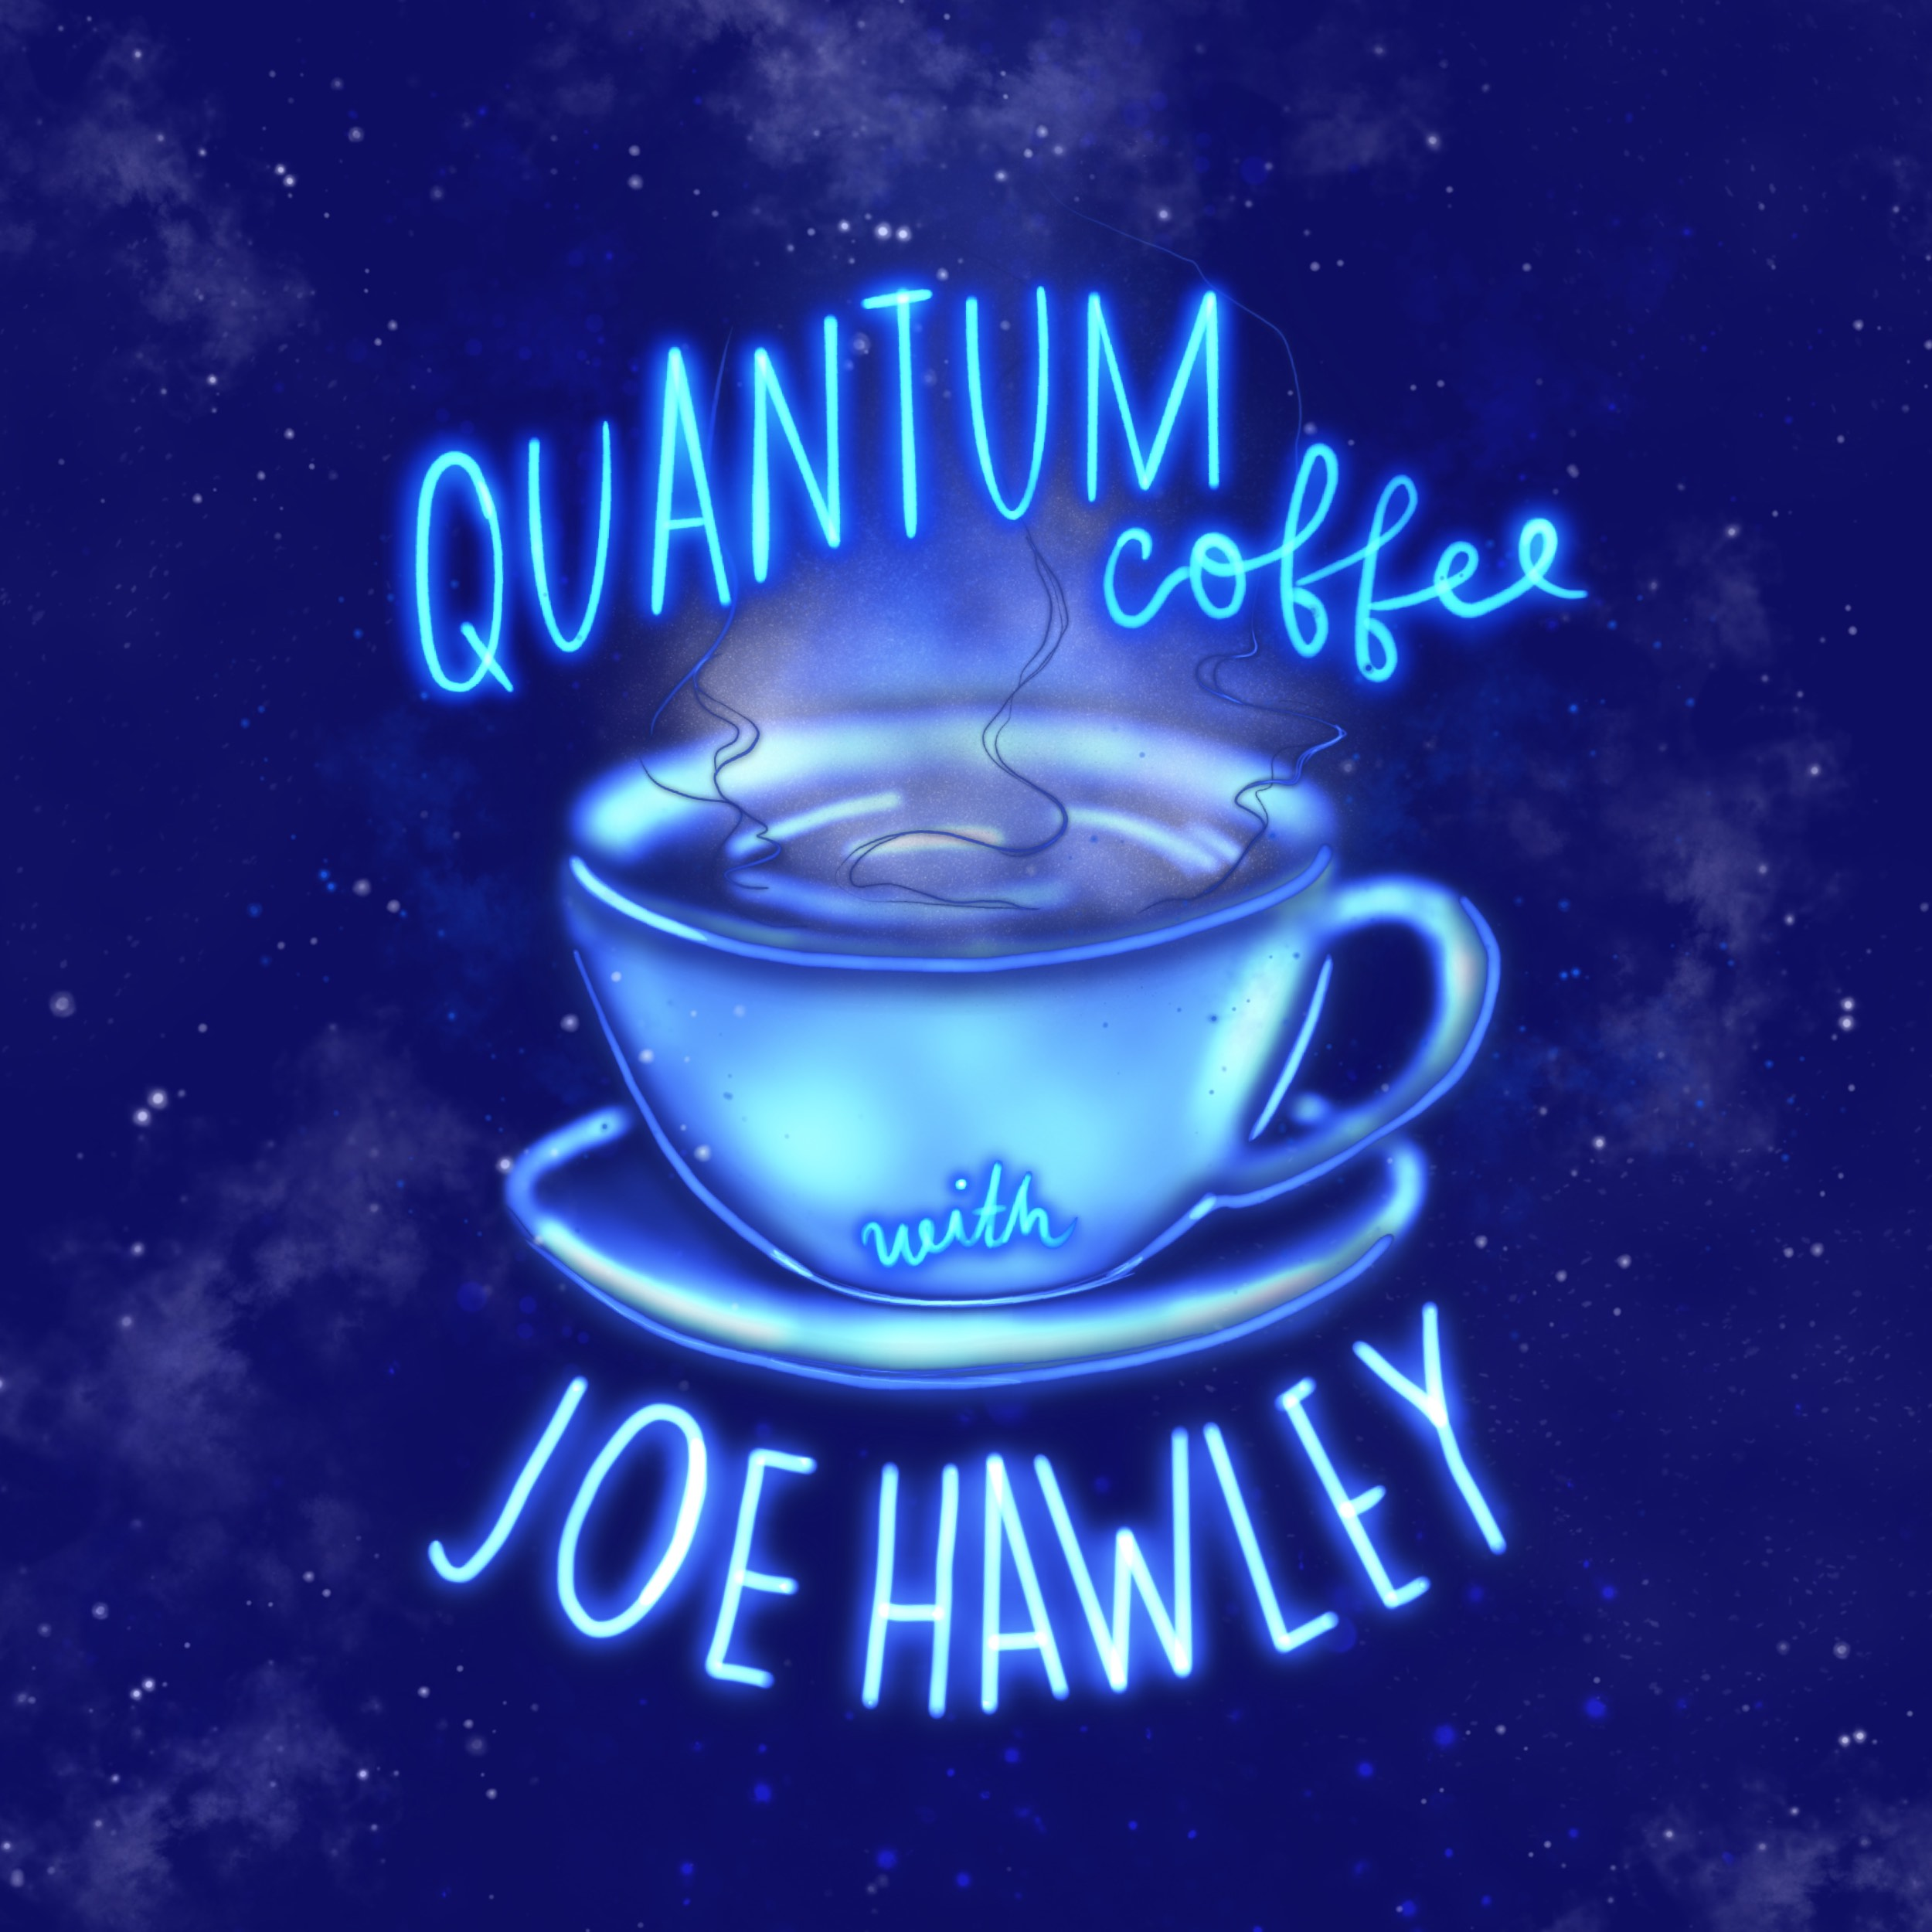 Artwork for podcast Quantum Coffee with Joe Hawley Podcast